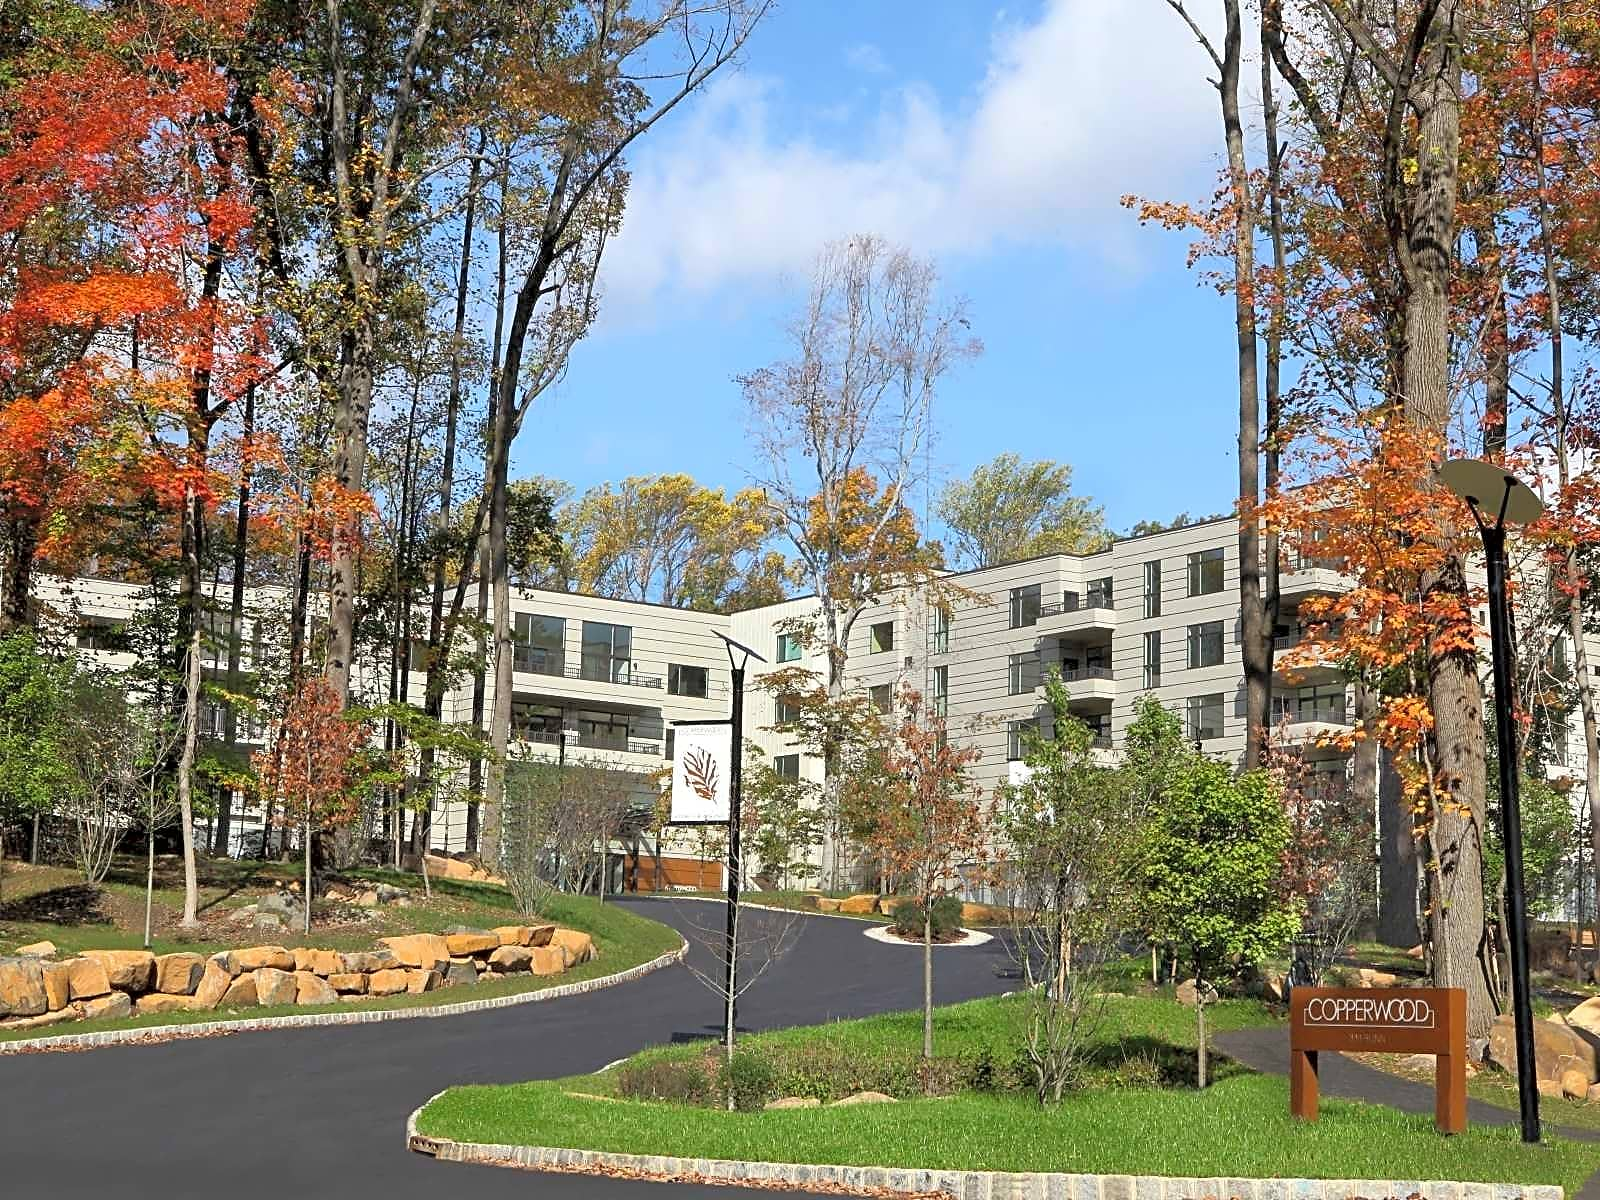 Apartments Near Rutgers Copperwood in Princeton for Rutgers University Students in New Brunswick, NJ